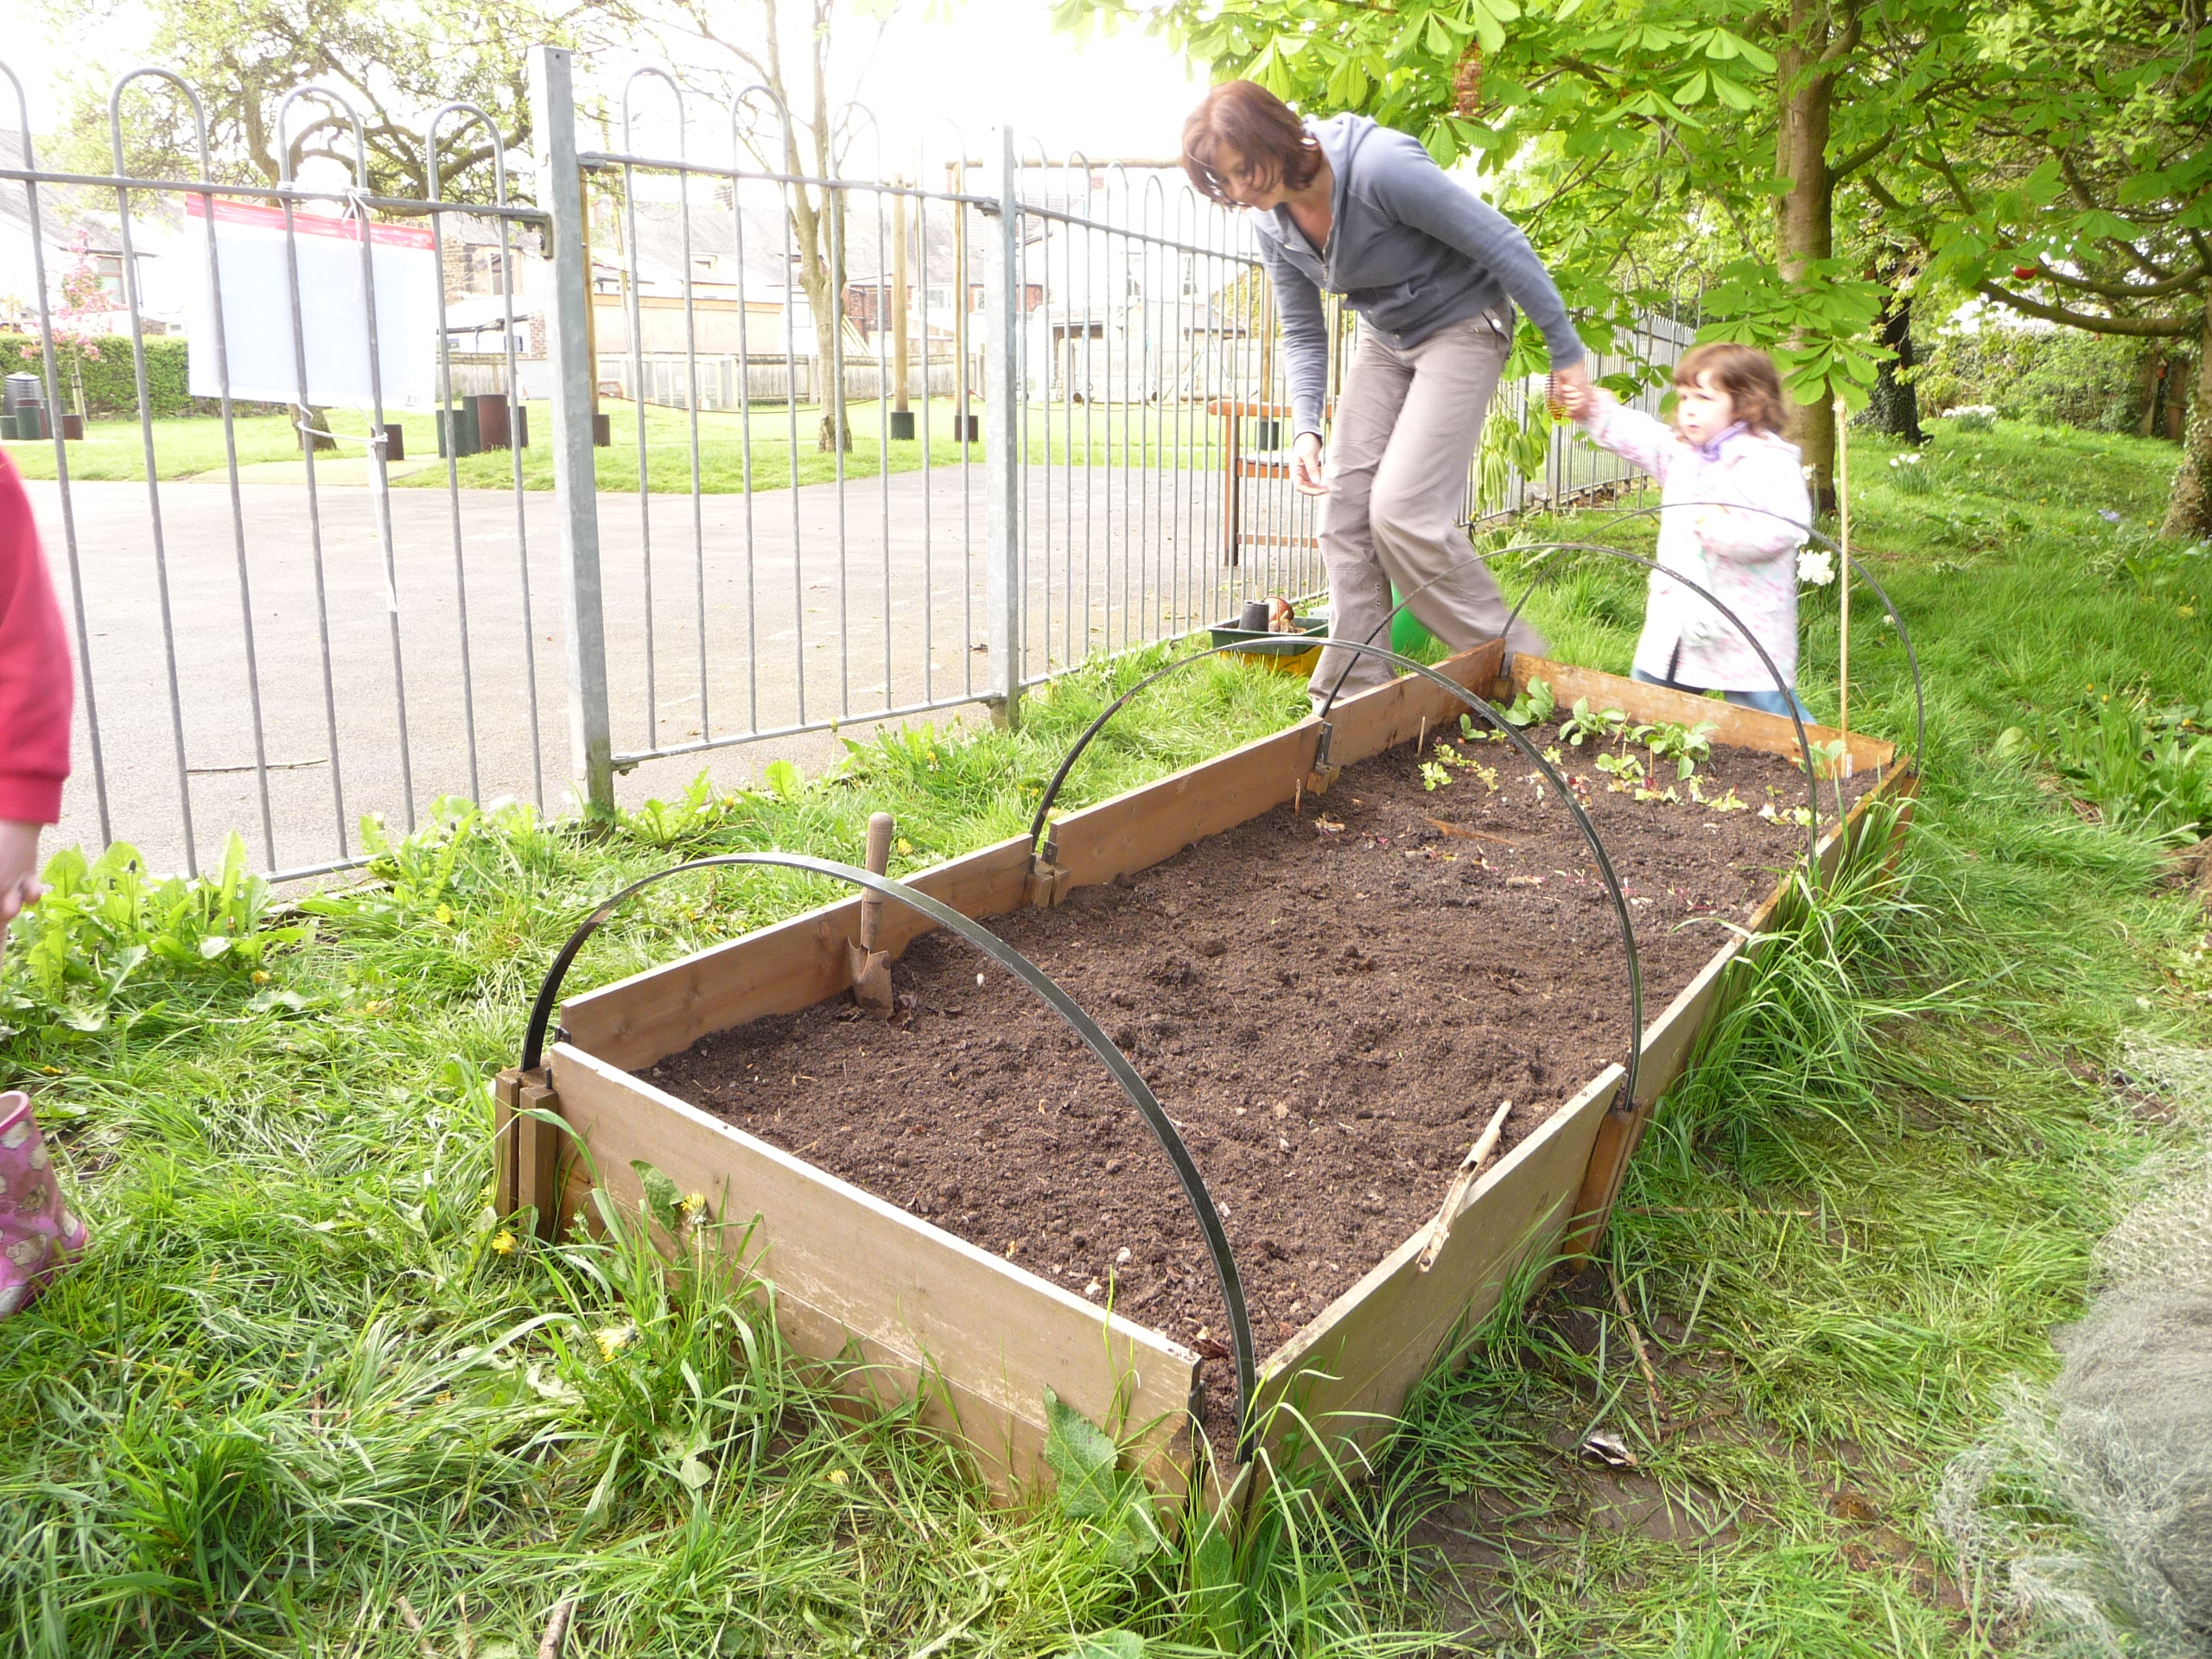 Gardening jobs for march what to do this term school for Gardening jobs for march